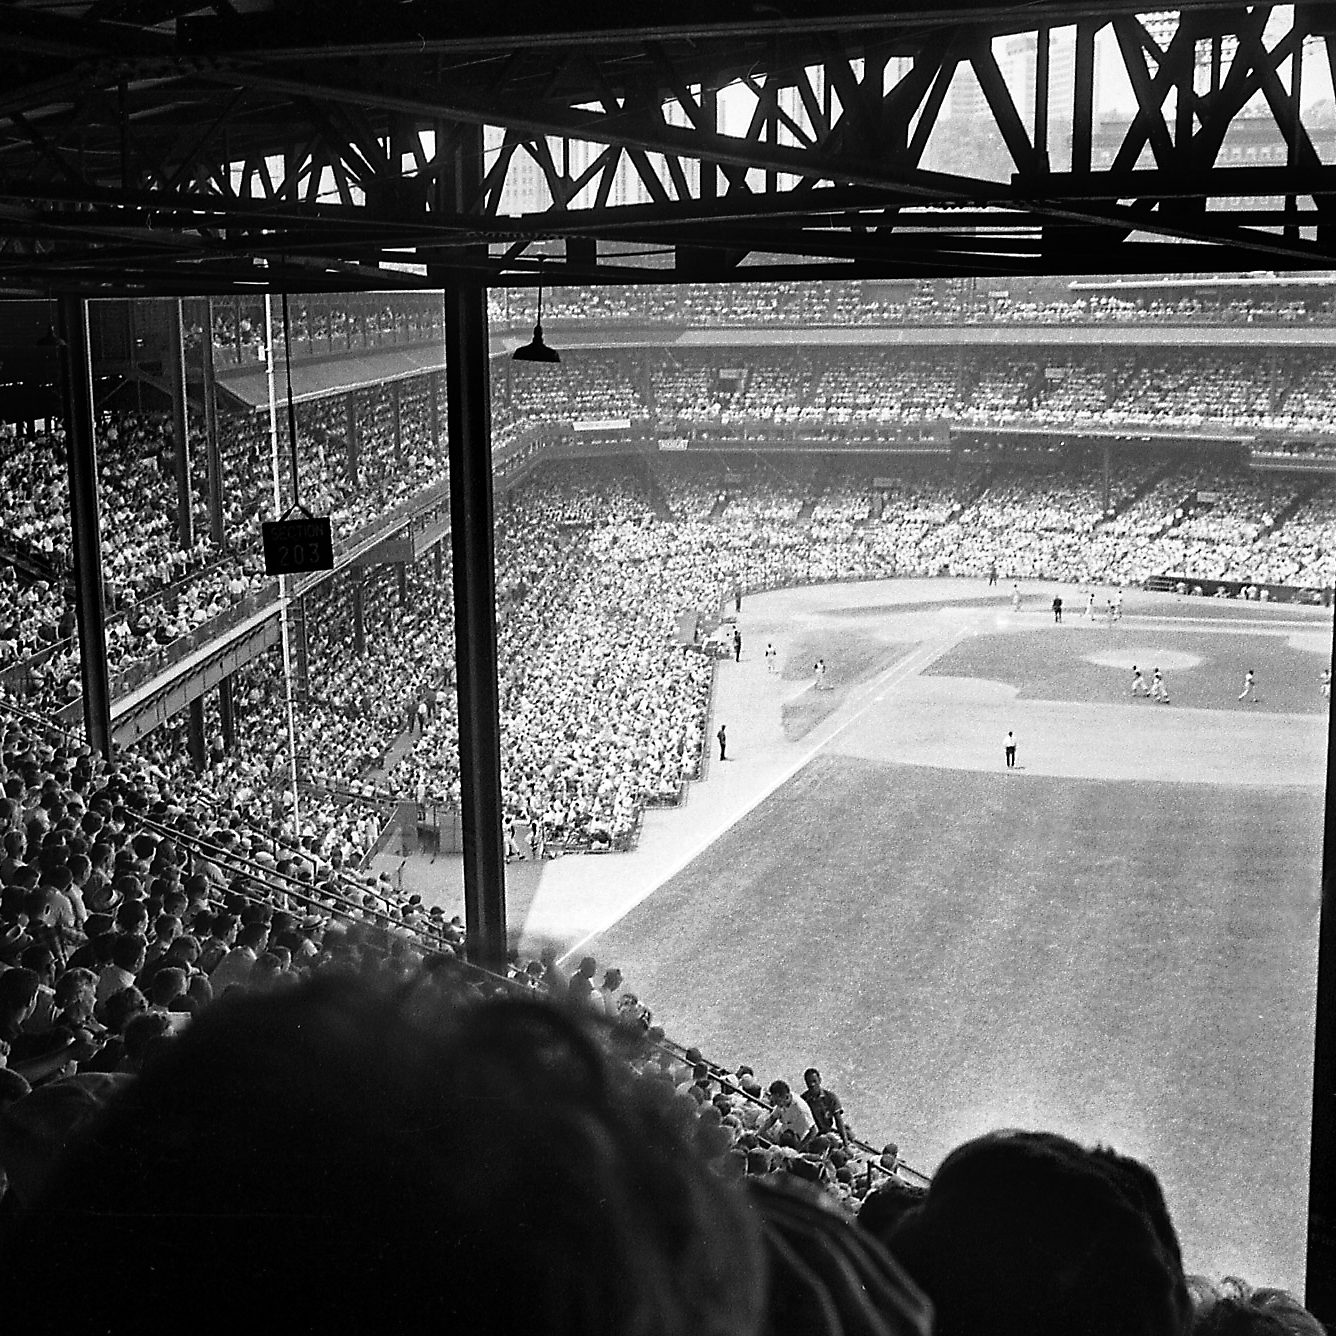 July 17, 1966: More than 35,000 fans jammed Forbes Field that day — a record for the season.